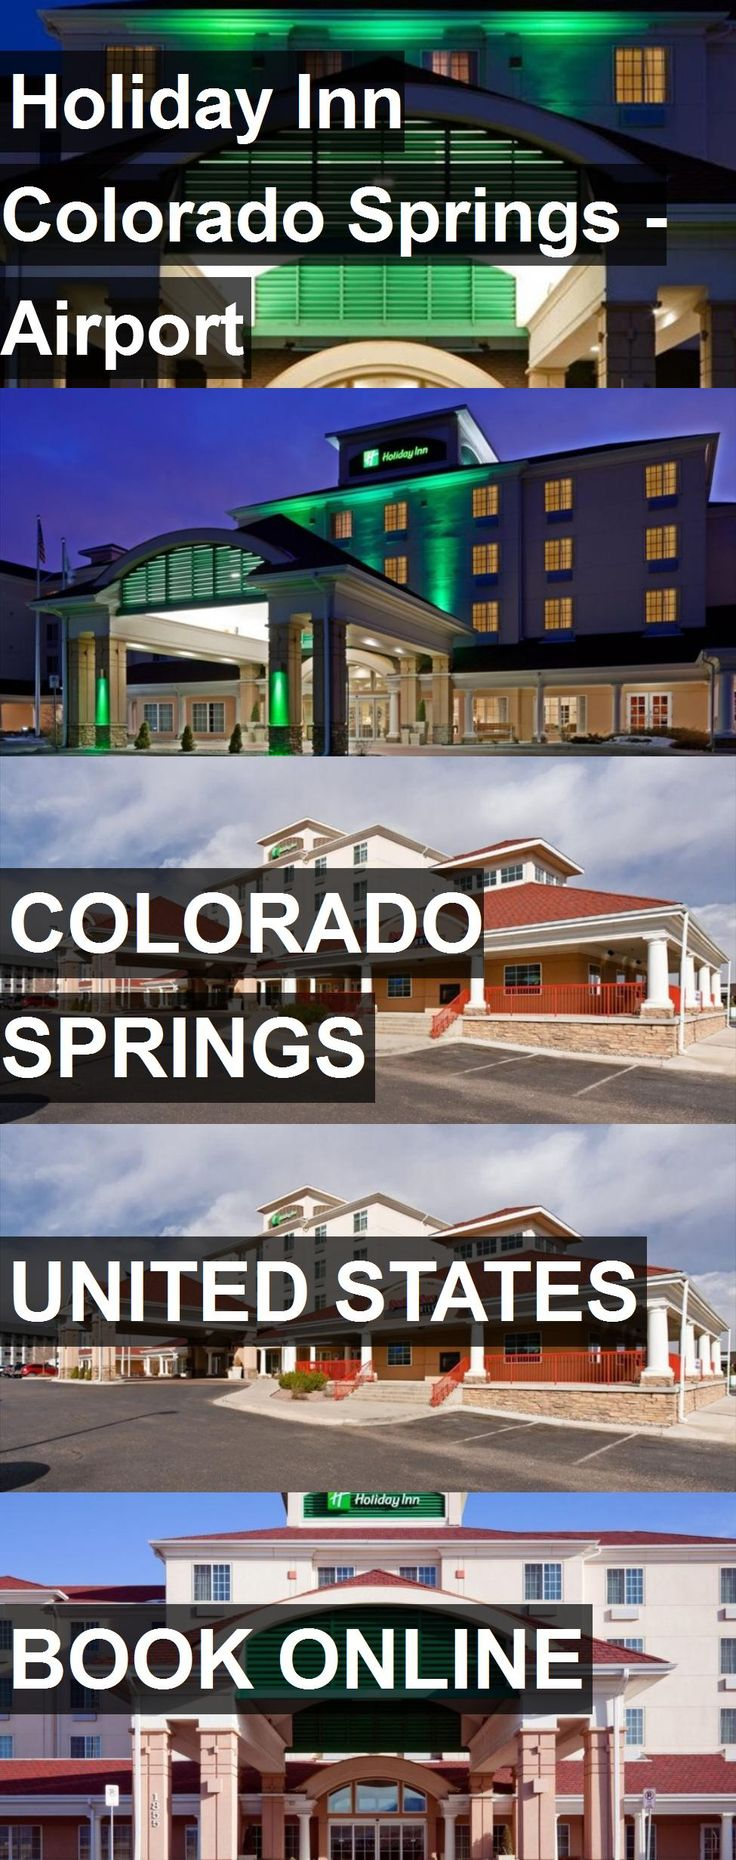 Us Map With State Abbreviations And Time Zones%0A Hotel Holiday Inn Colorado Springs  Airport in Colorado Springs  United  States  For more